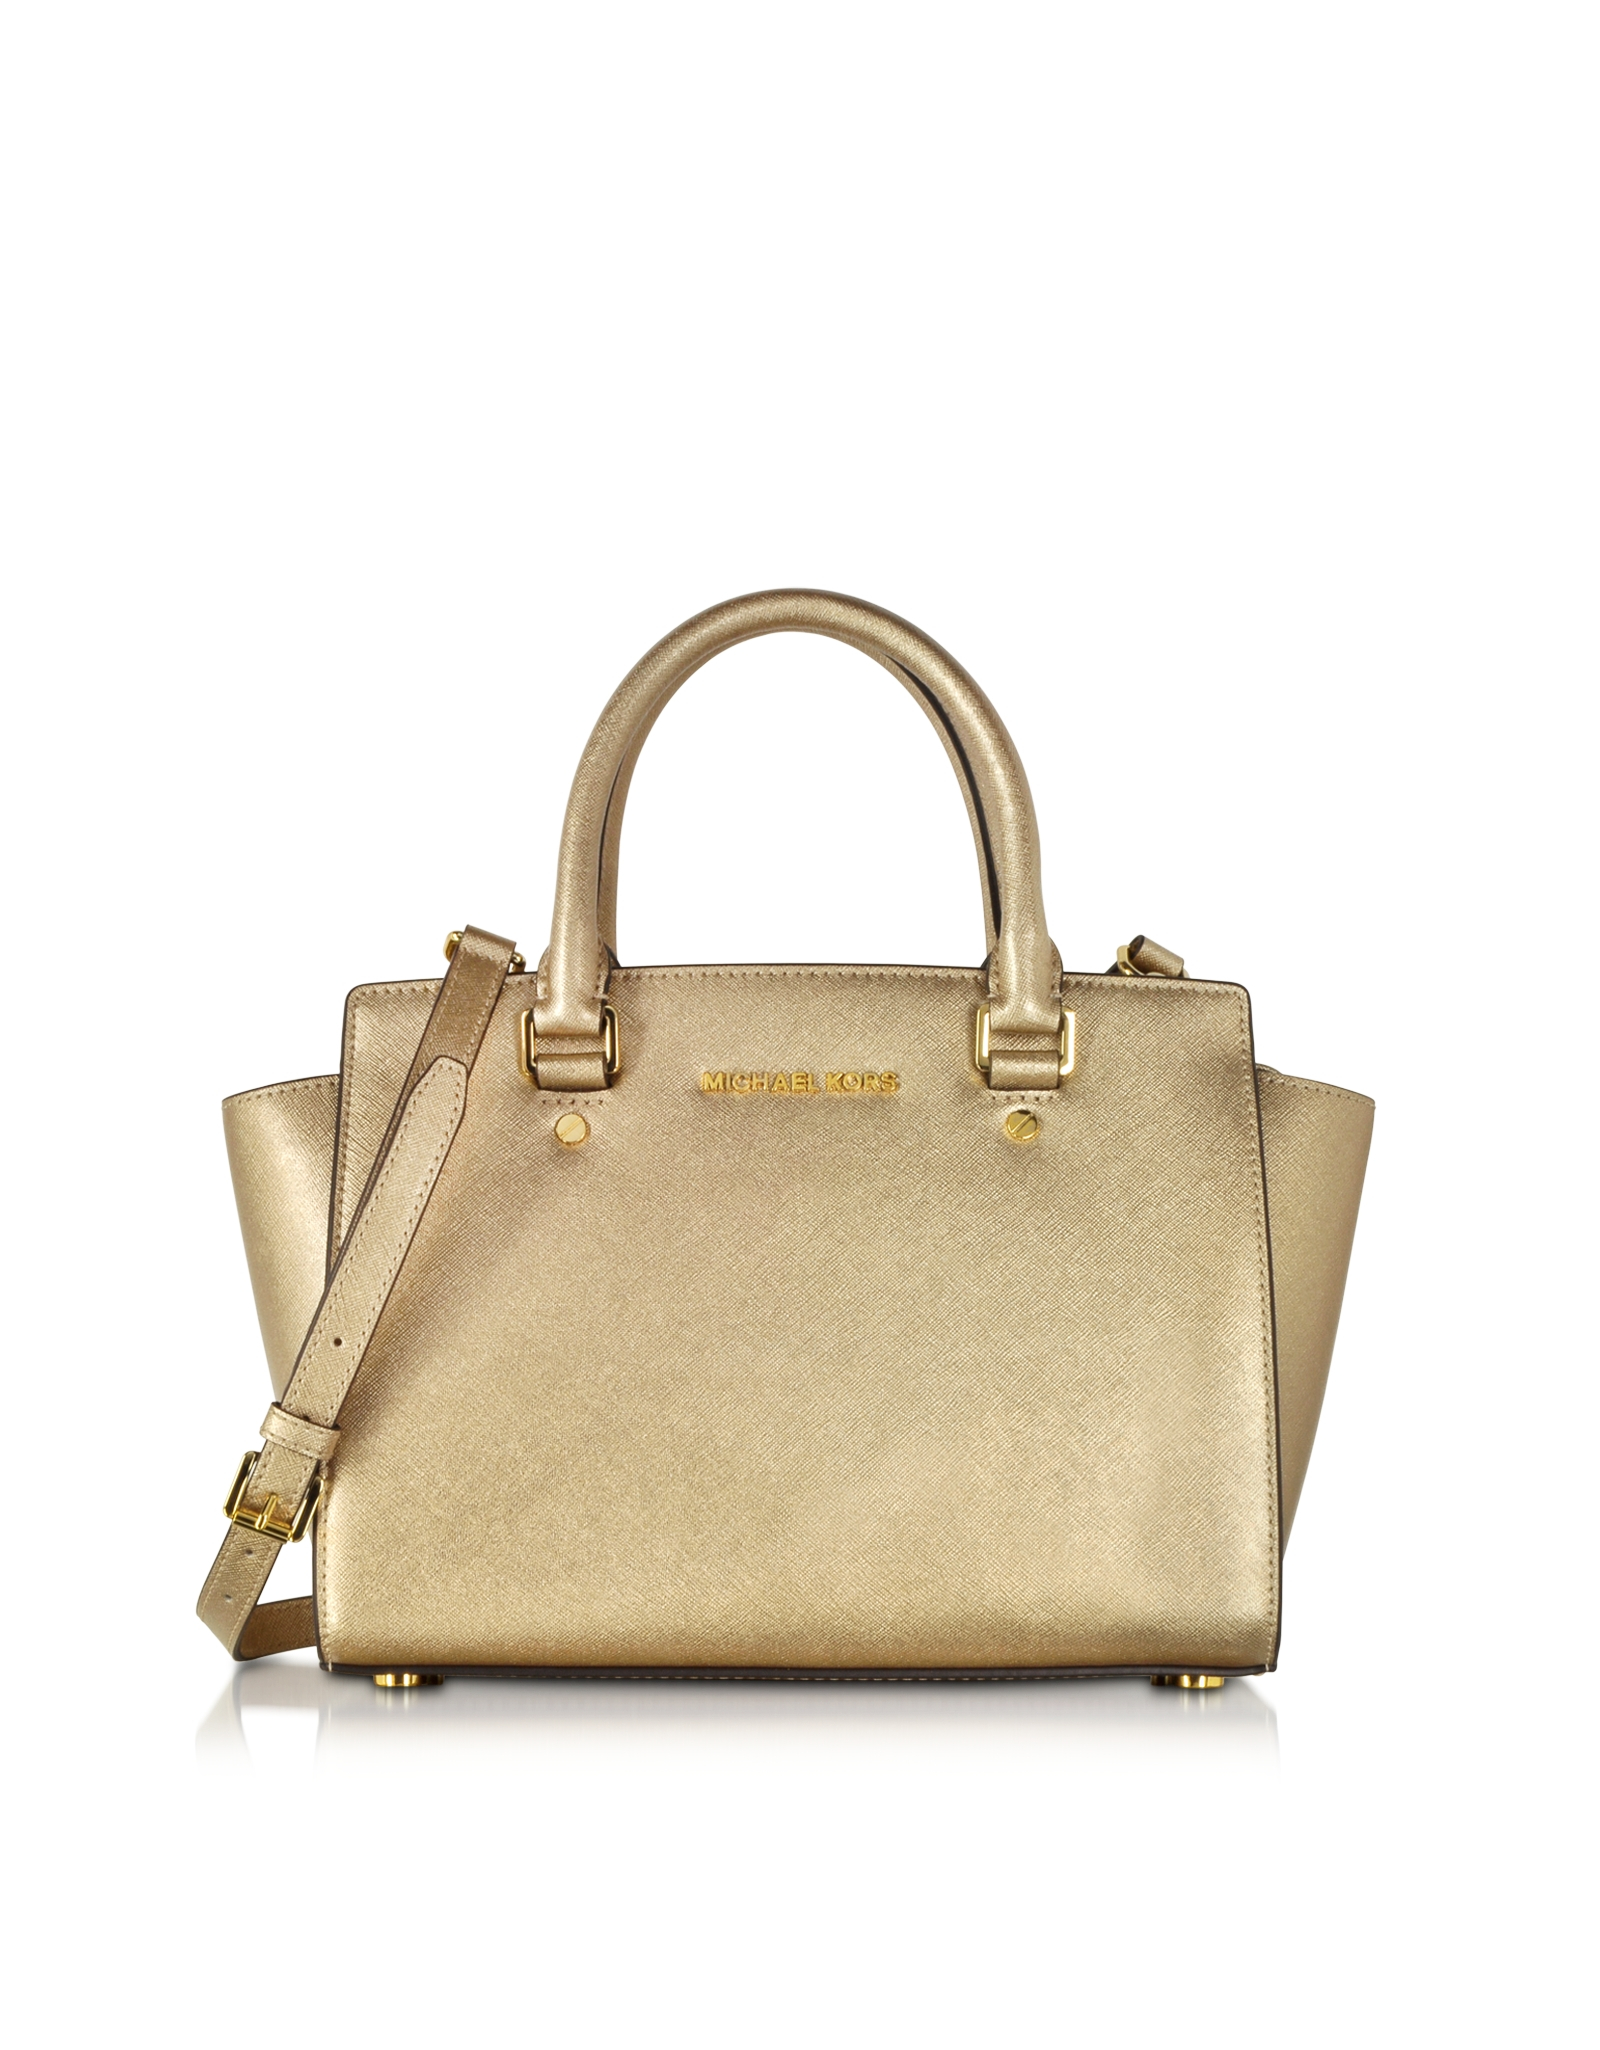 michael kors handtasche gold michael kors tasche handtasche bag clutch fulton sm shldr file. Black Bedroom Furniture Sets. Home Design Ideas